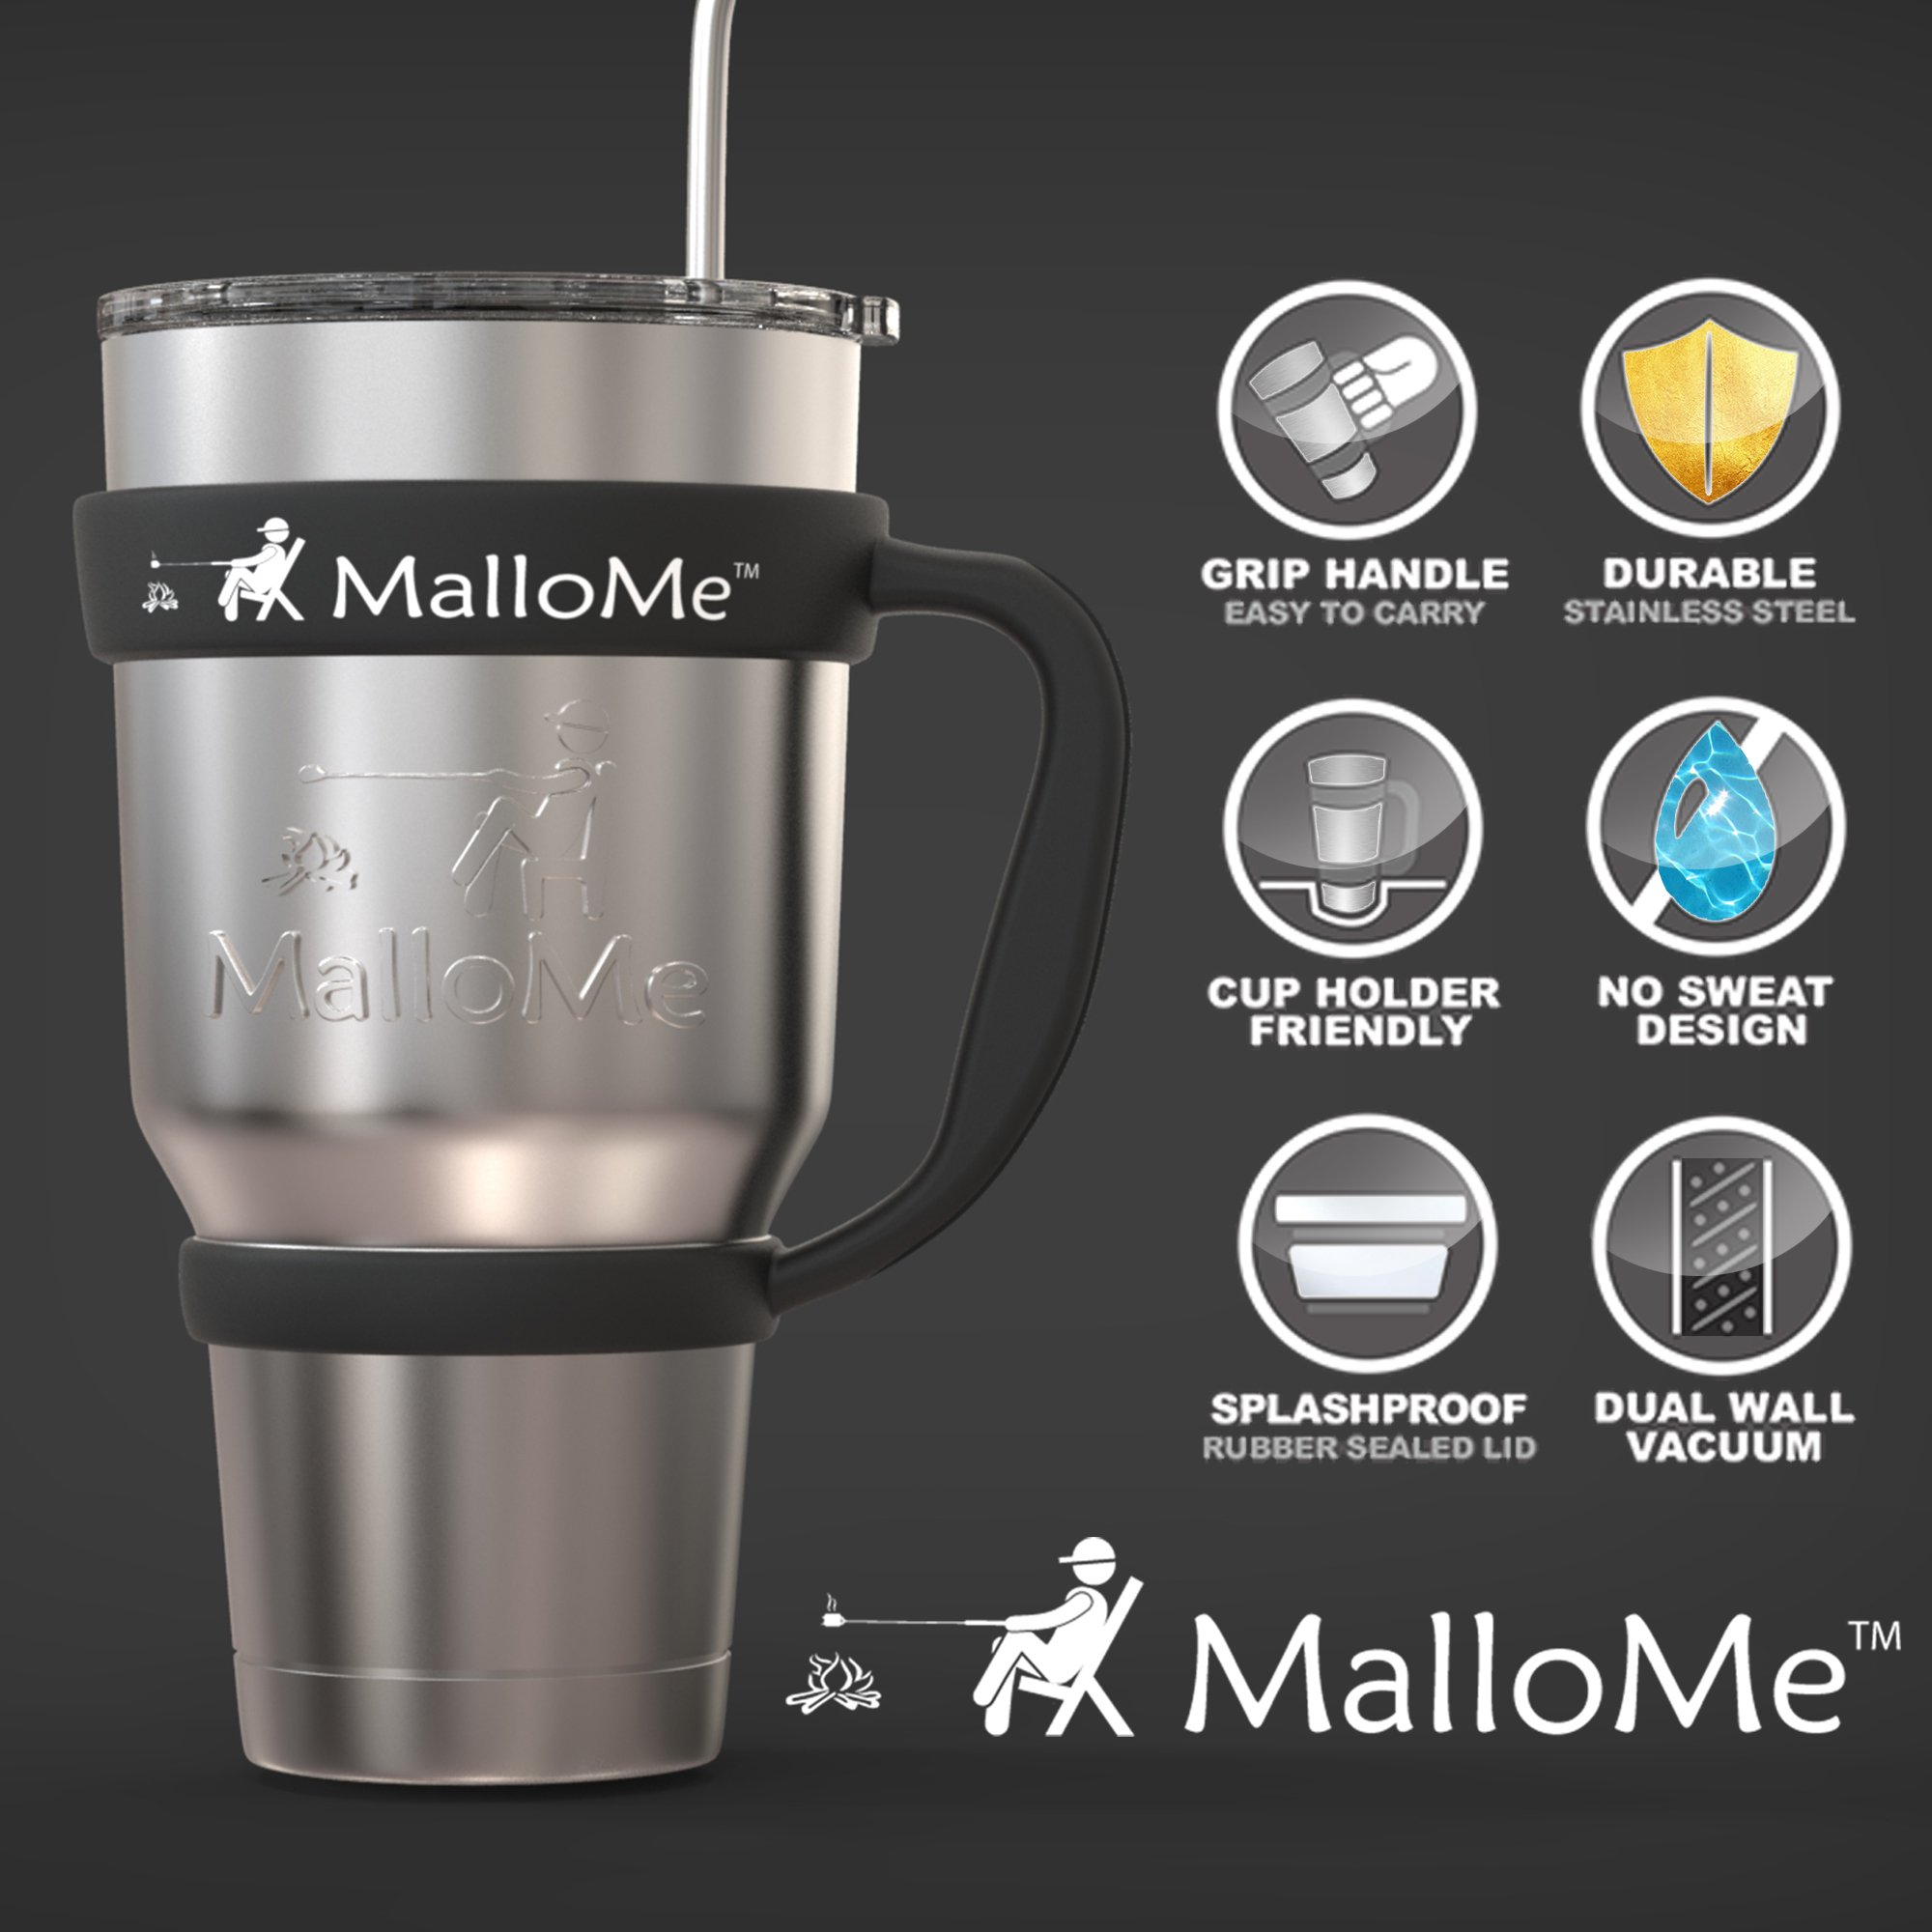 MalloMe Stainless Steel Vacuum Insulated 30 oz Water & Coffee Cup Tumbler Travel Mug, 6 Piece Set by MalloMe (Image #5)